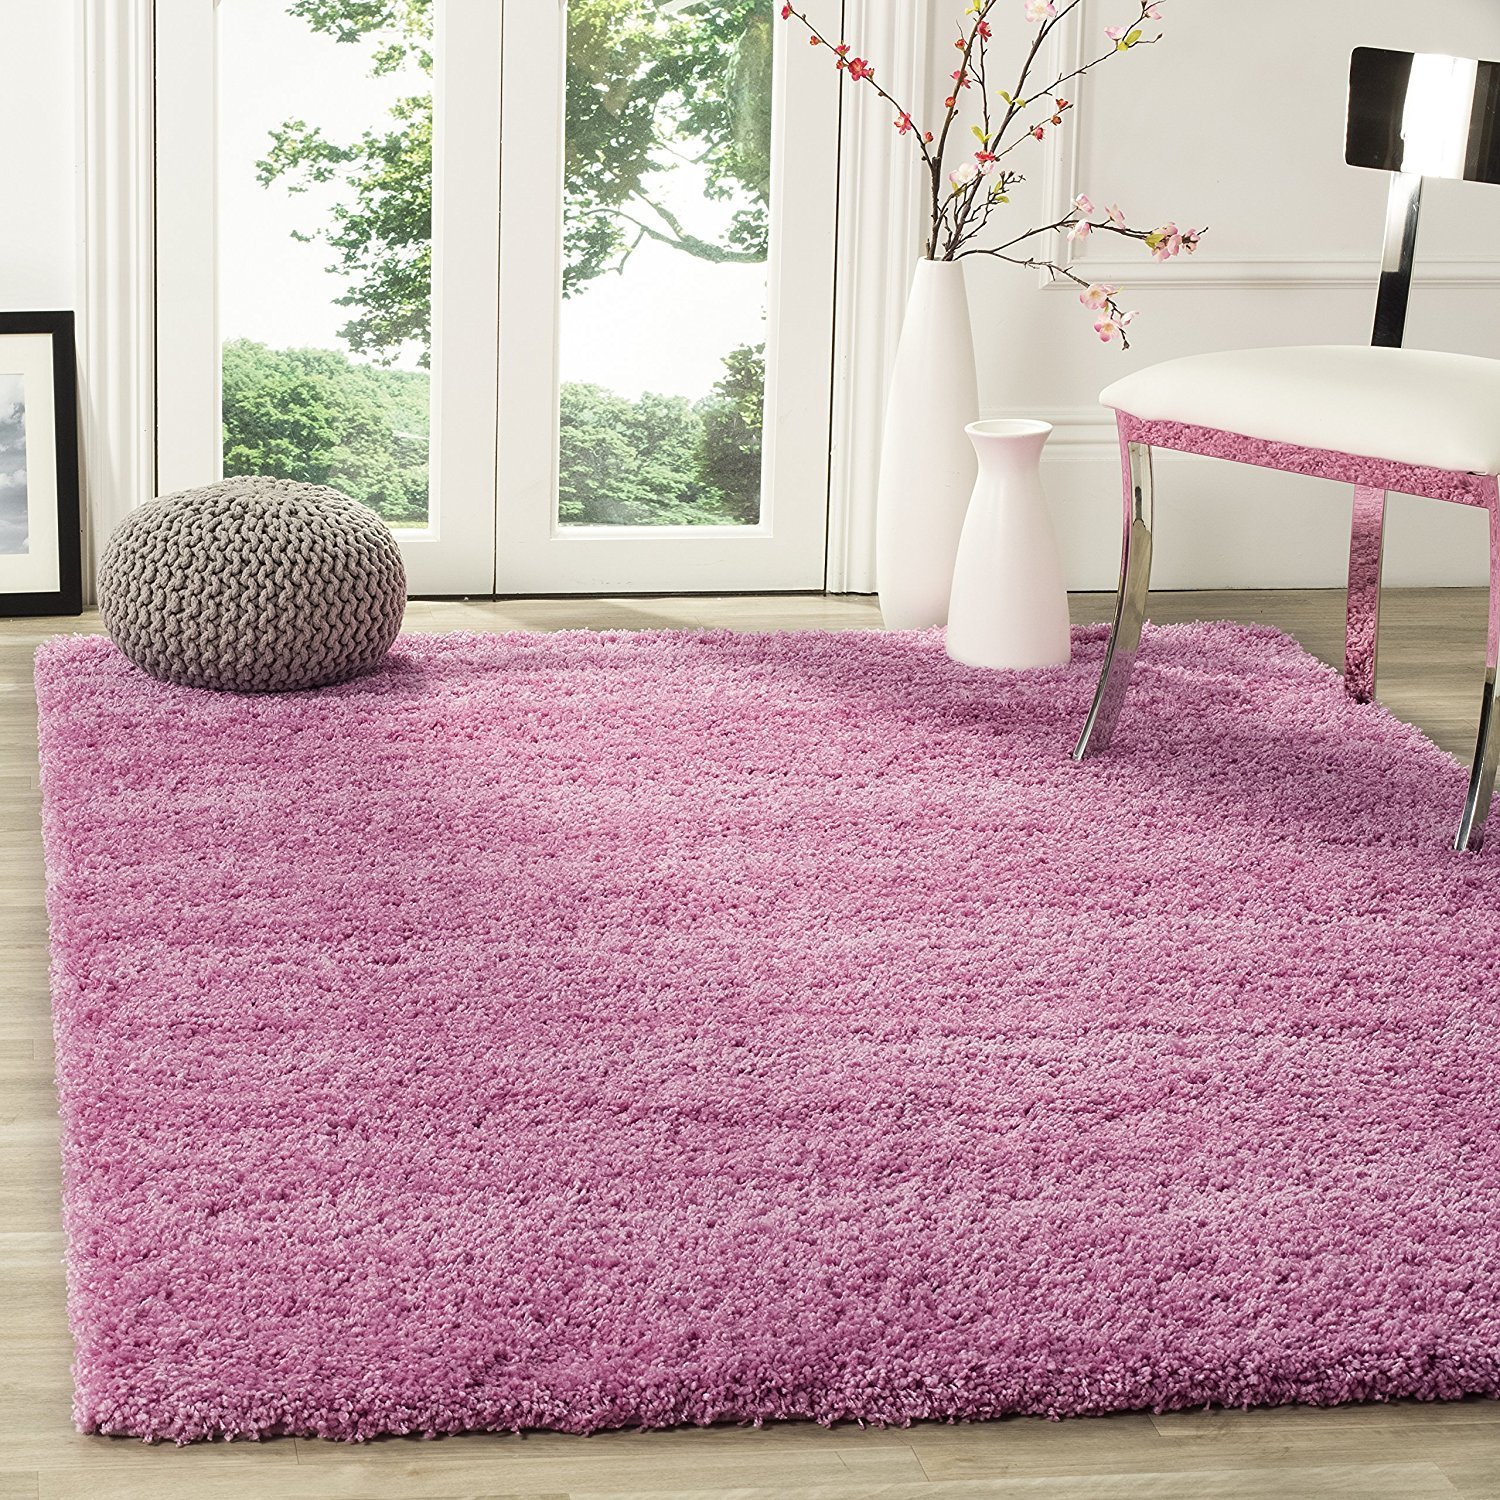 Small Large Pink Rug Cerise Runners Sparkle Modern Thick: Small X Large Shaggy Area Rugs Mat 5cm Thick Soft Pile